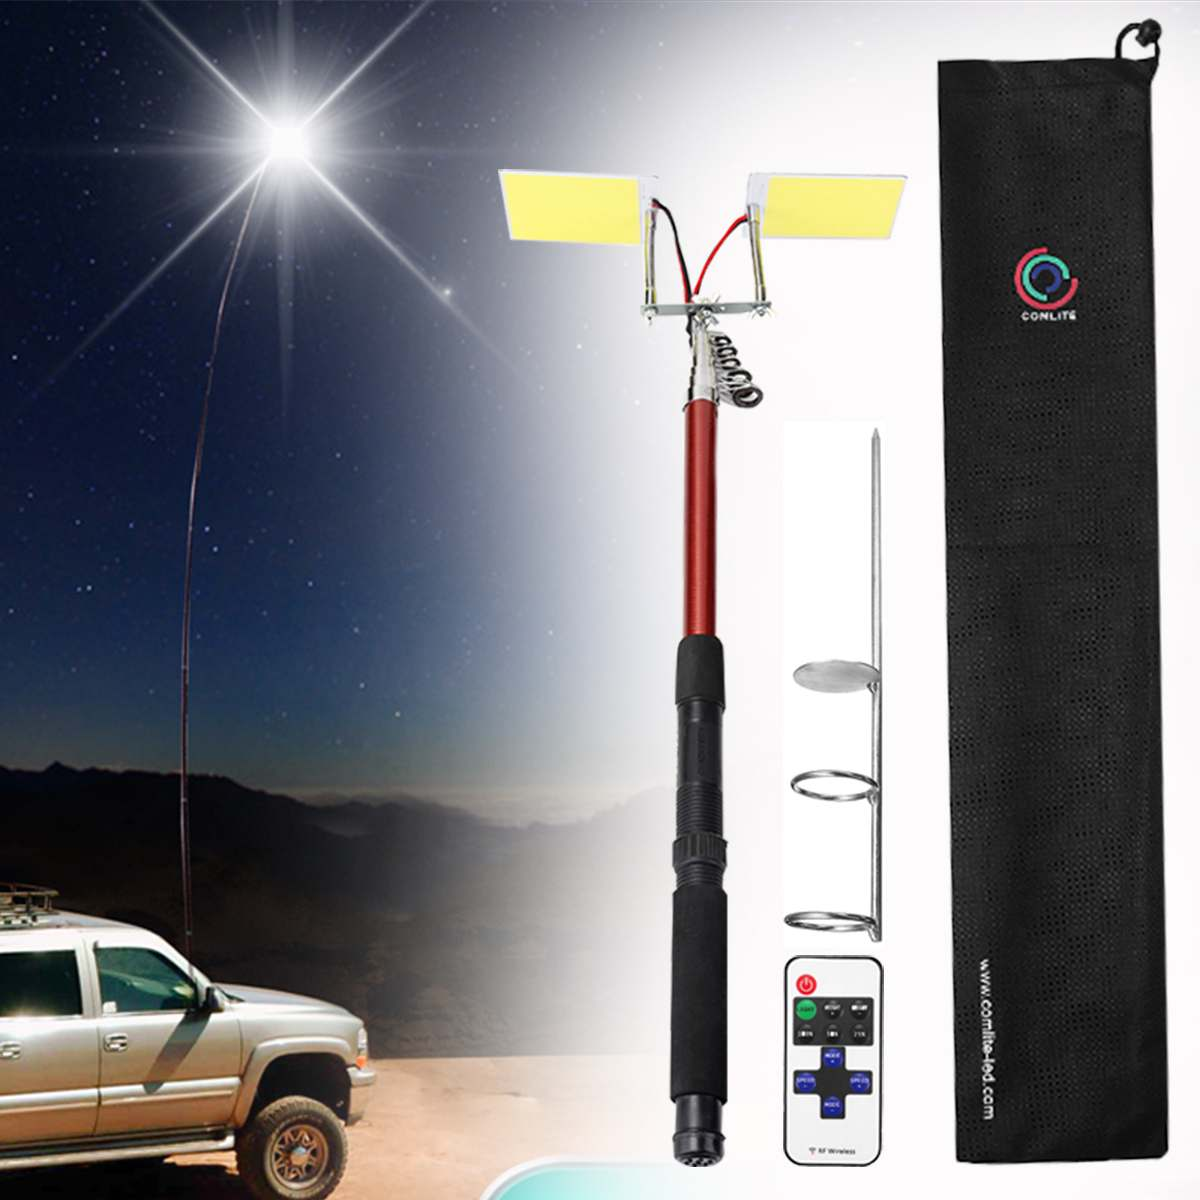 3.75M 12V Telescopic LED Fishing Rod Outdoor Lantern Camping Lamp Light With Remote Control For Road Trip Self-drive Travelling